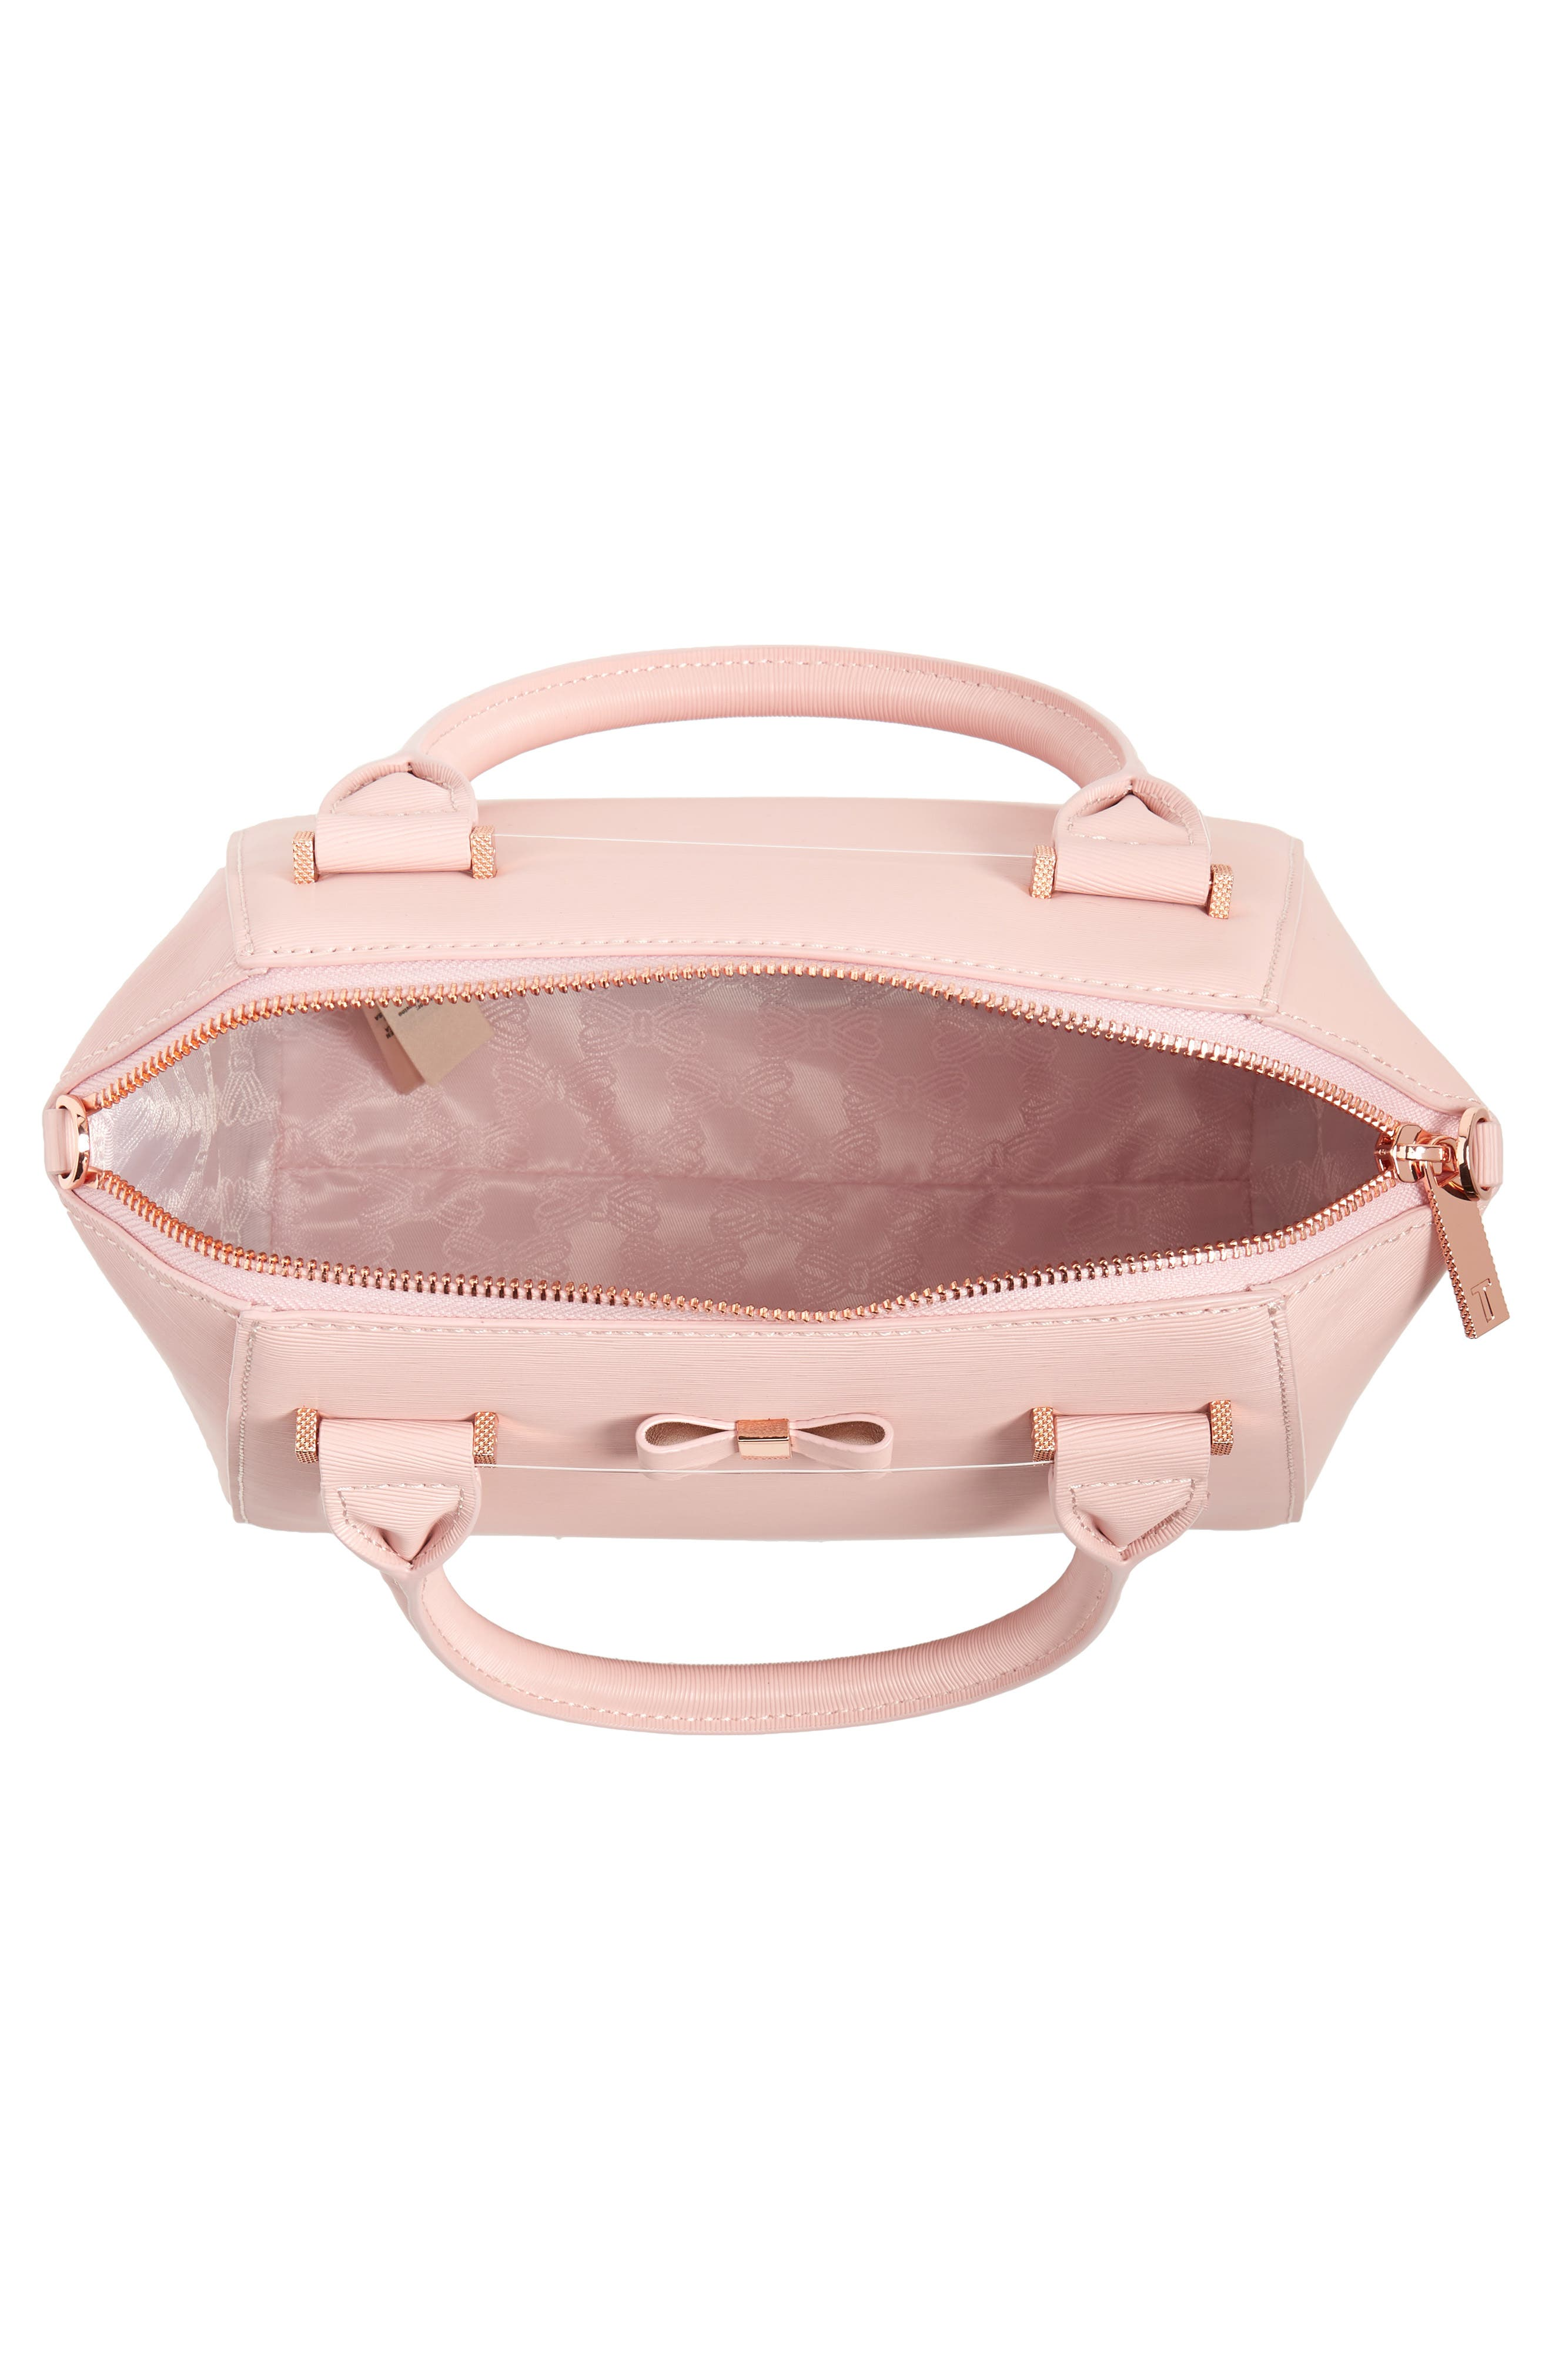 Bow Tote,                             Alternate thumbnail 4, color,                             LIGHT PINK